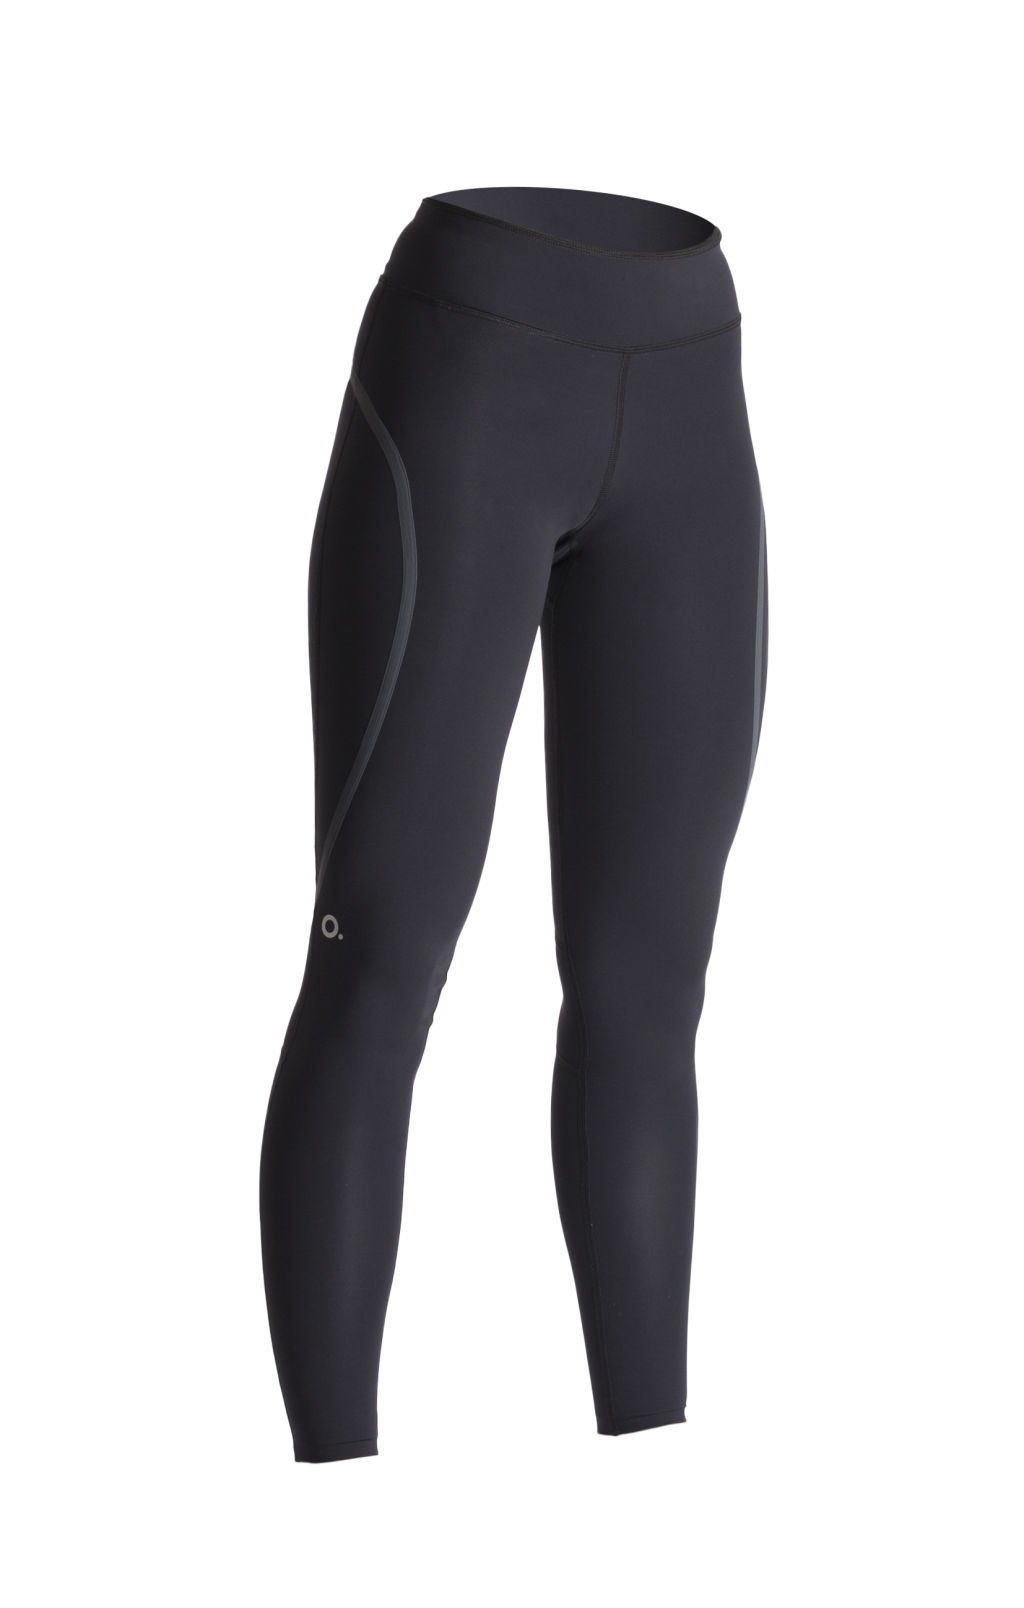 Zeropoint Power Compression Tights 2.0 W